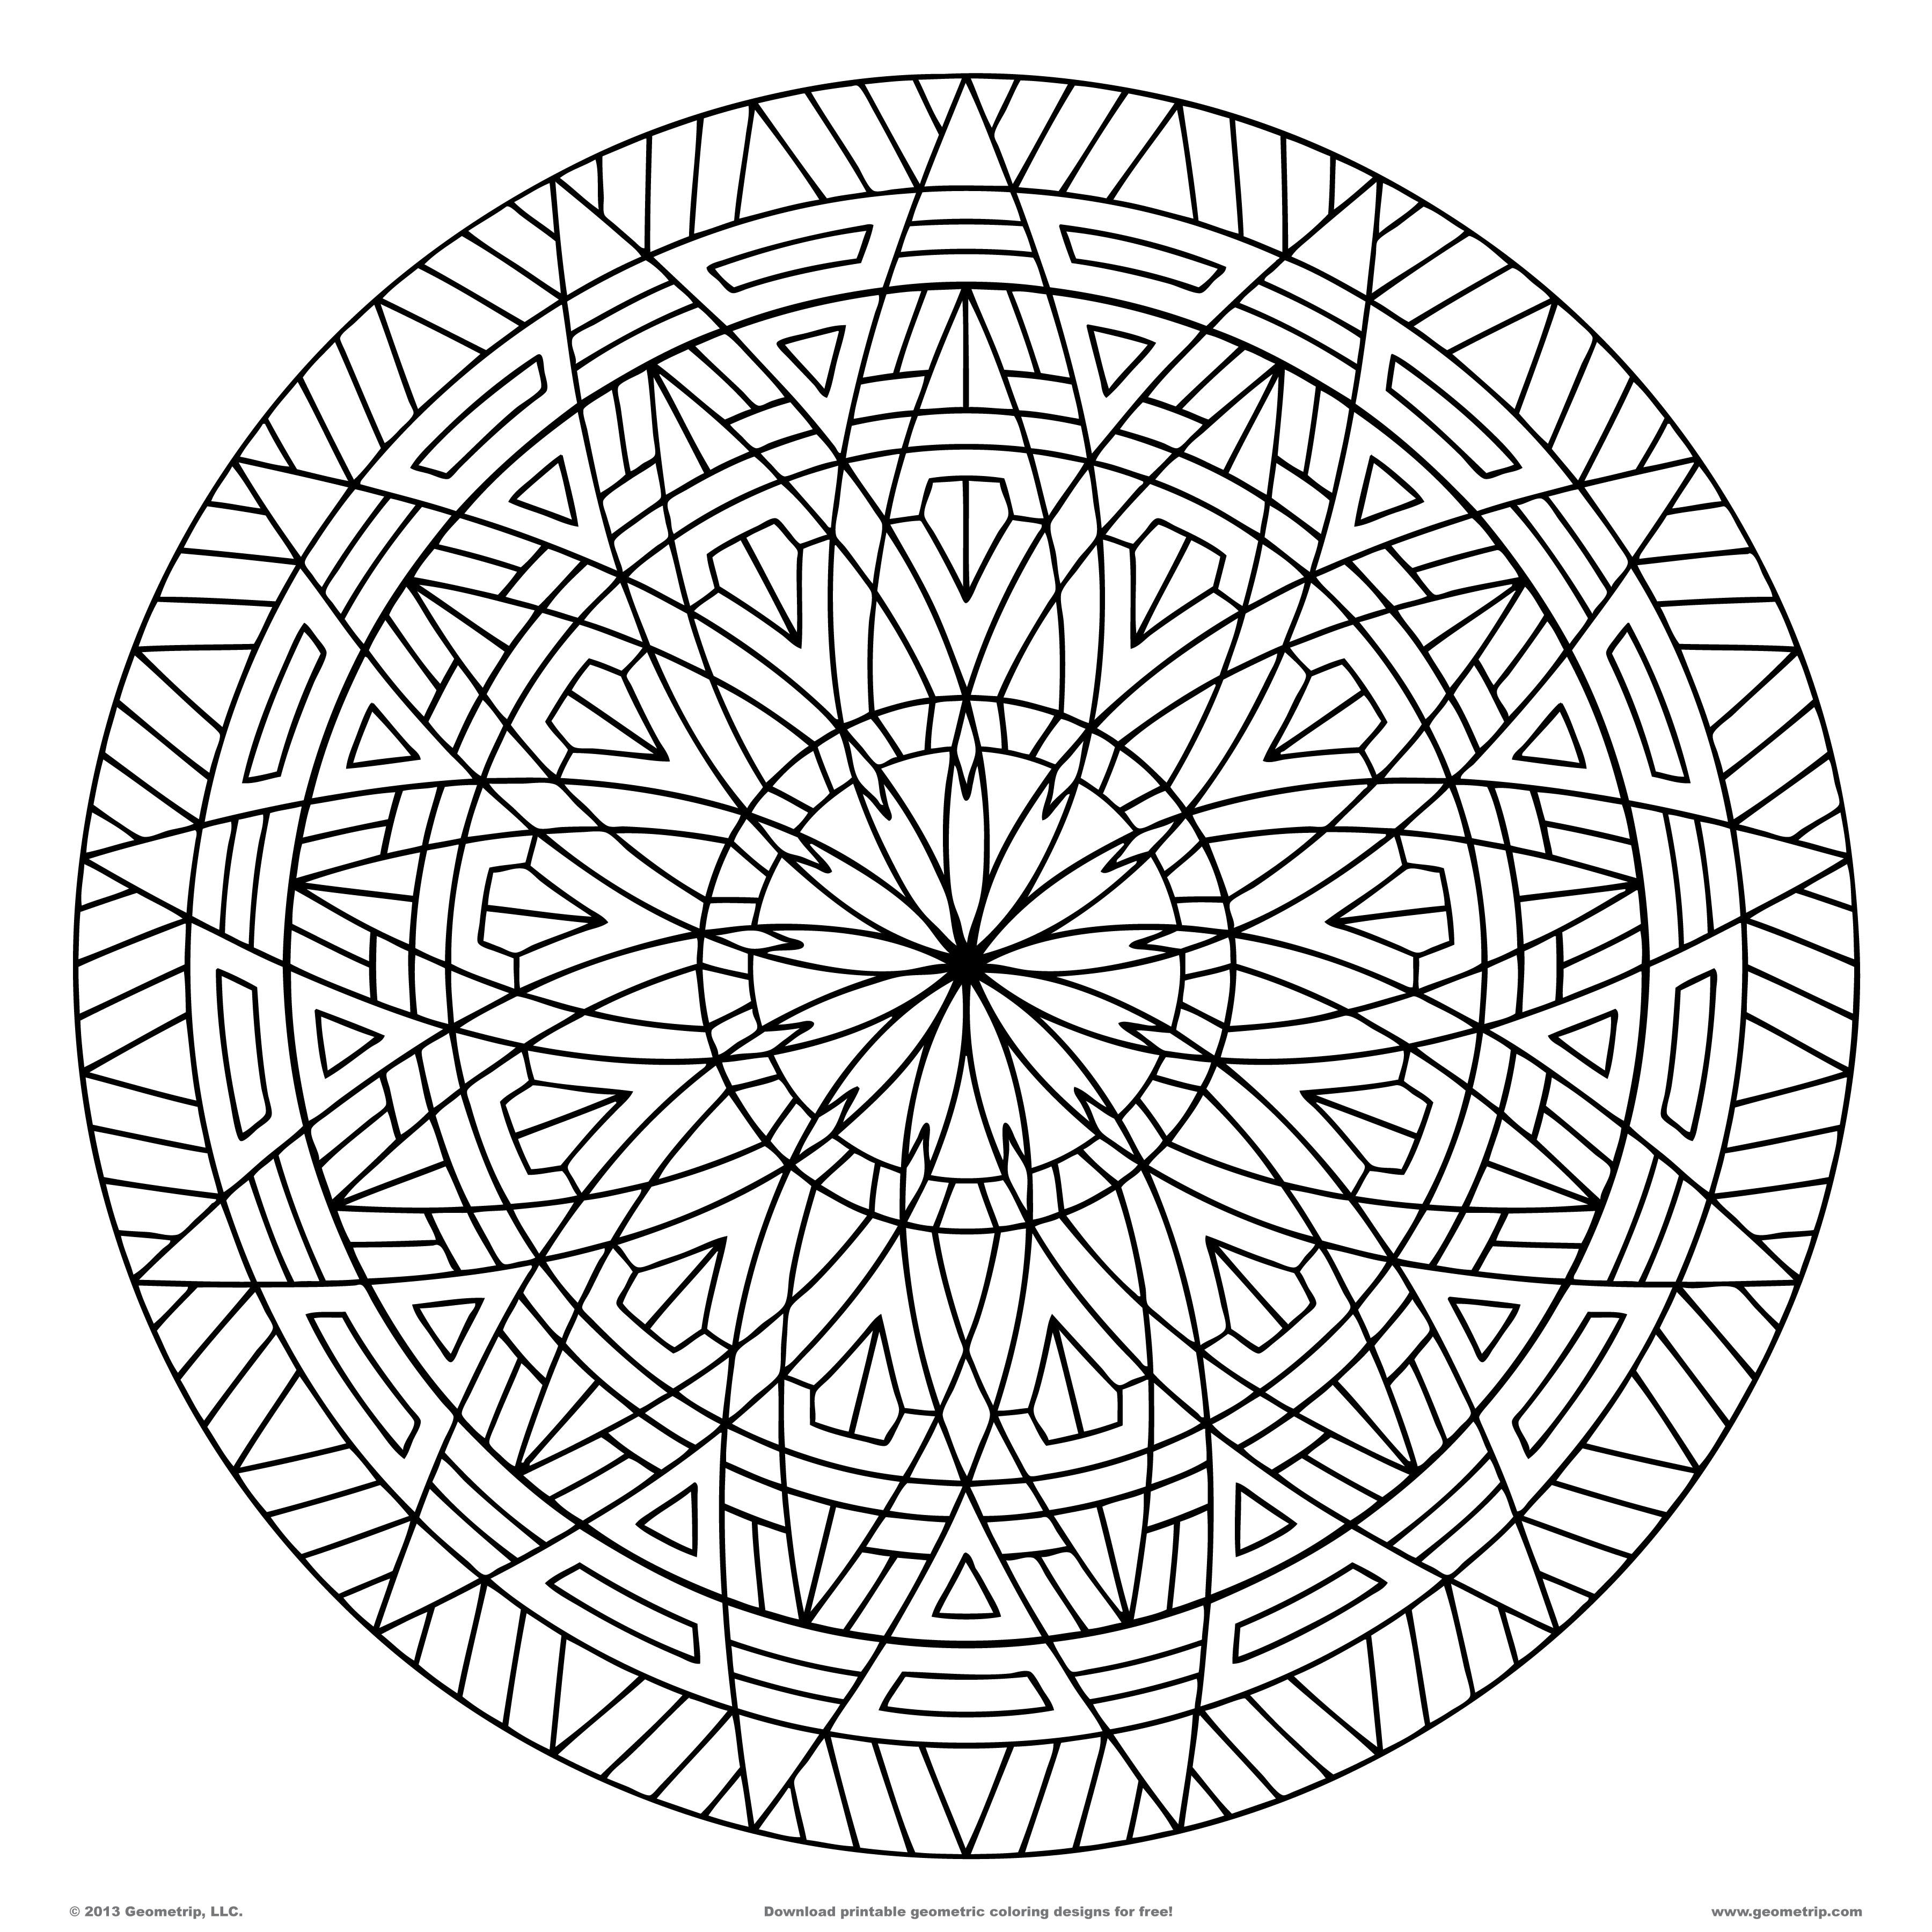 graphic art coloring pages free fantasy adult coloring pages download free clip art pages graphic coloring art